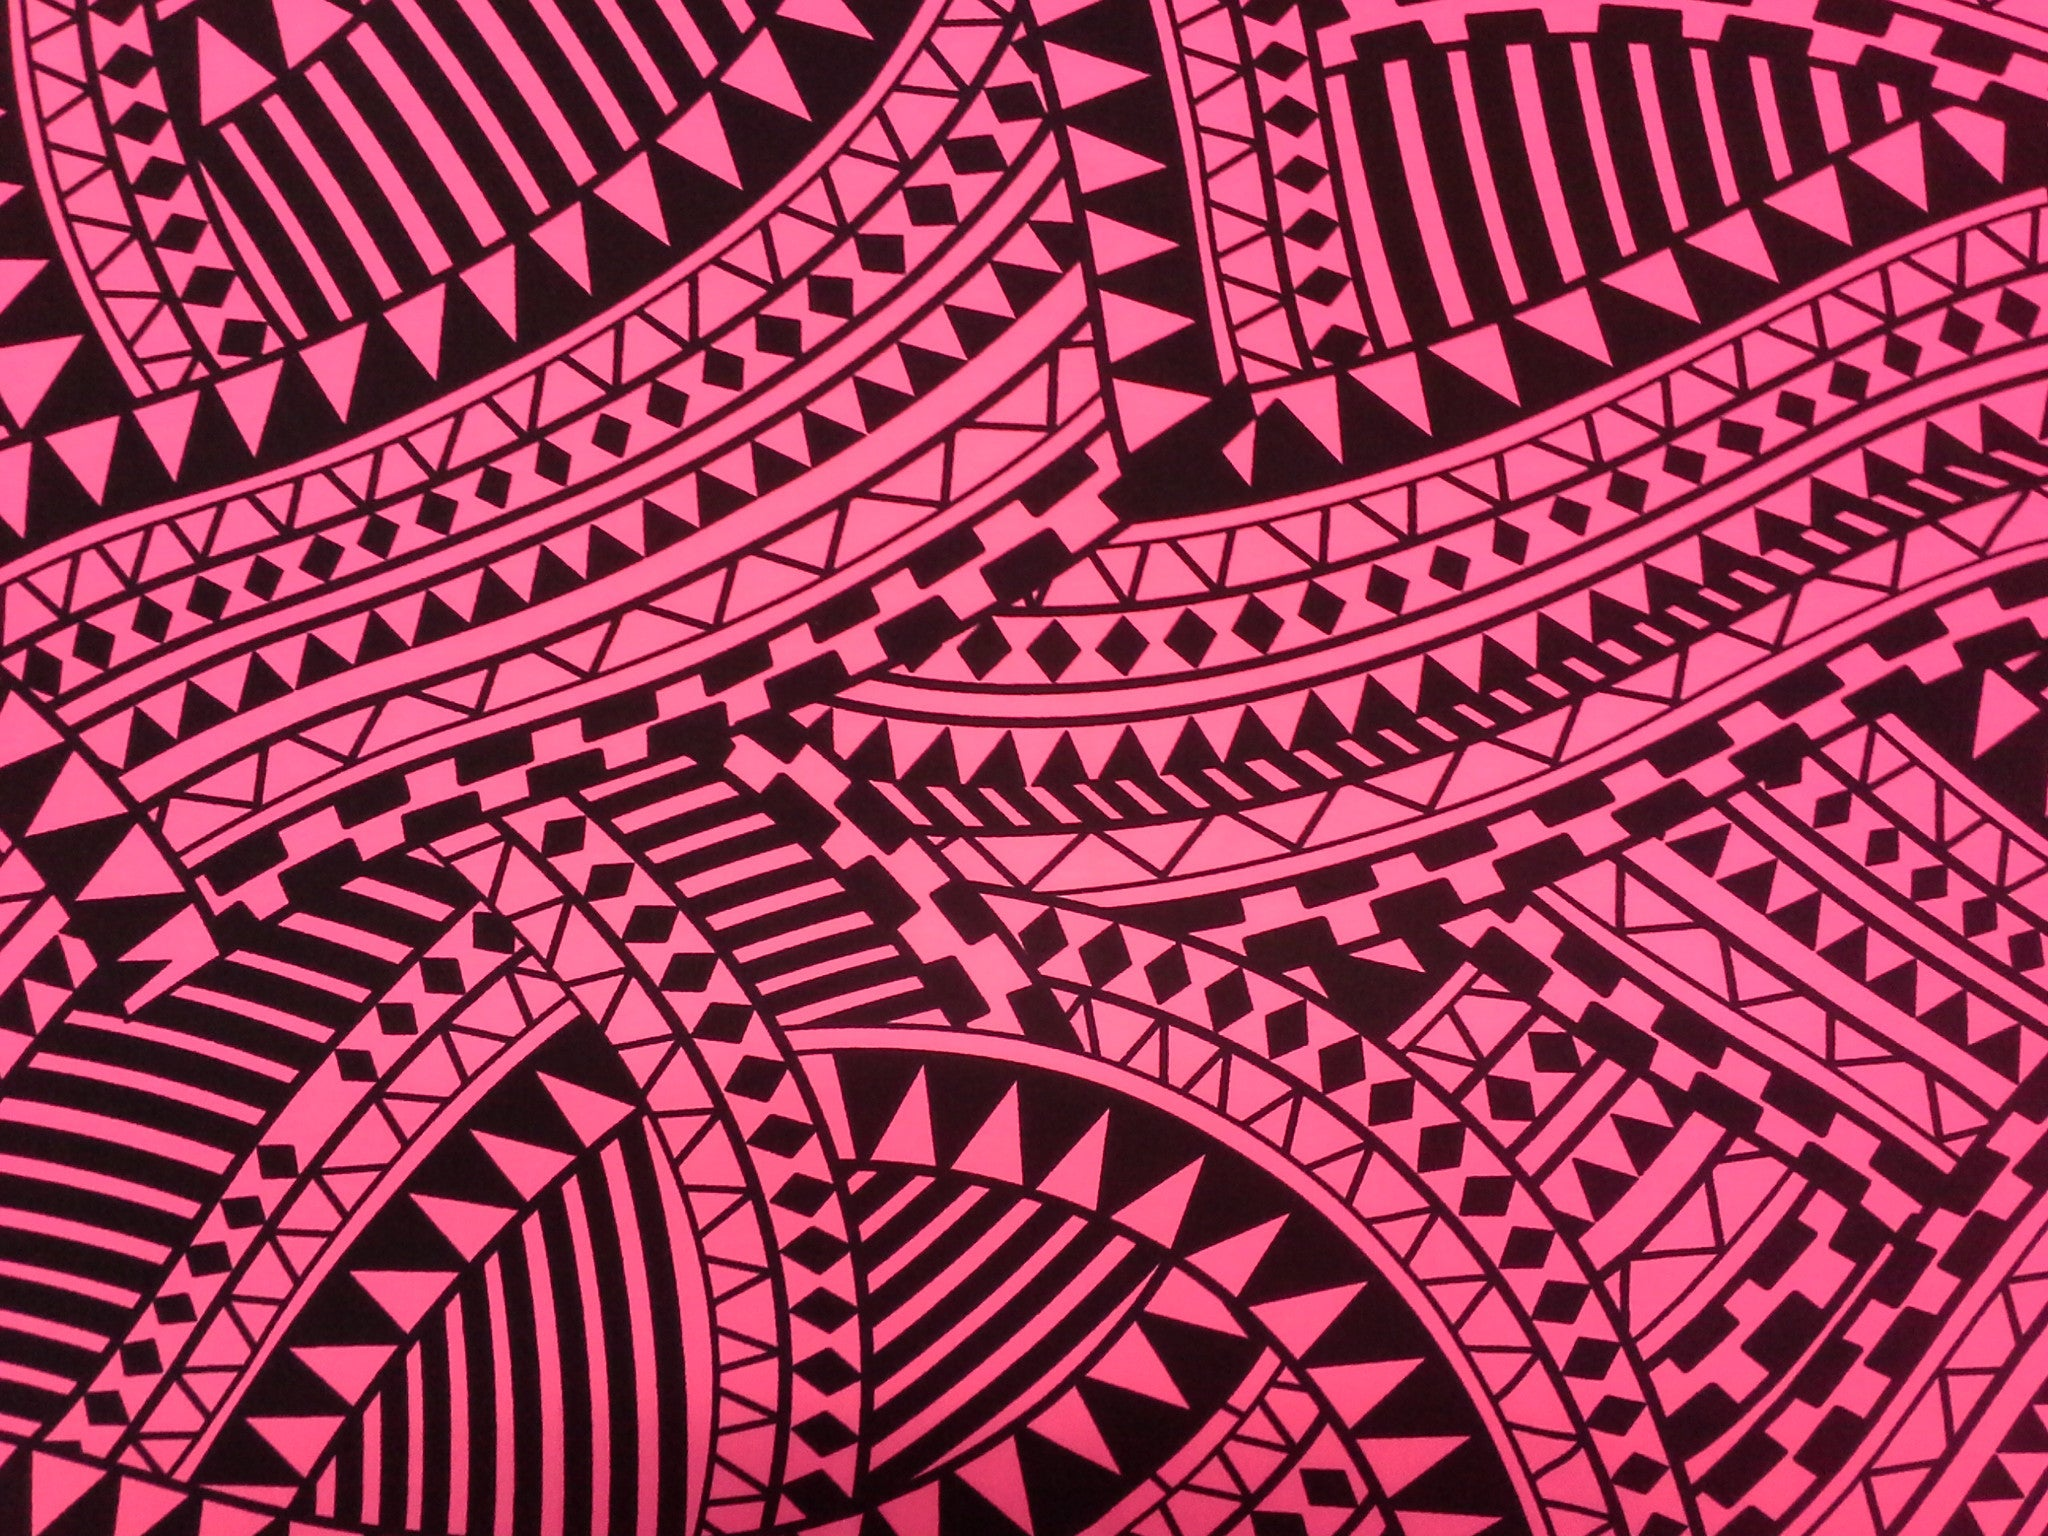 Girly Tribal Print Wallpaper | www.imgkid.com - The Image ...